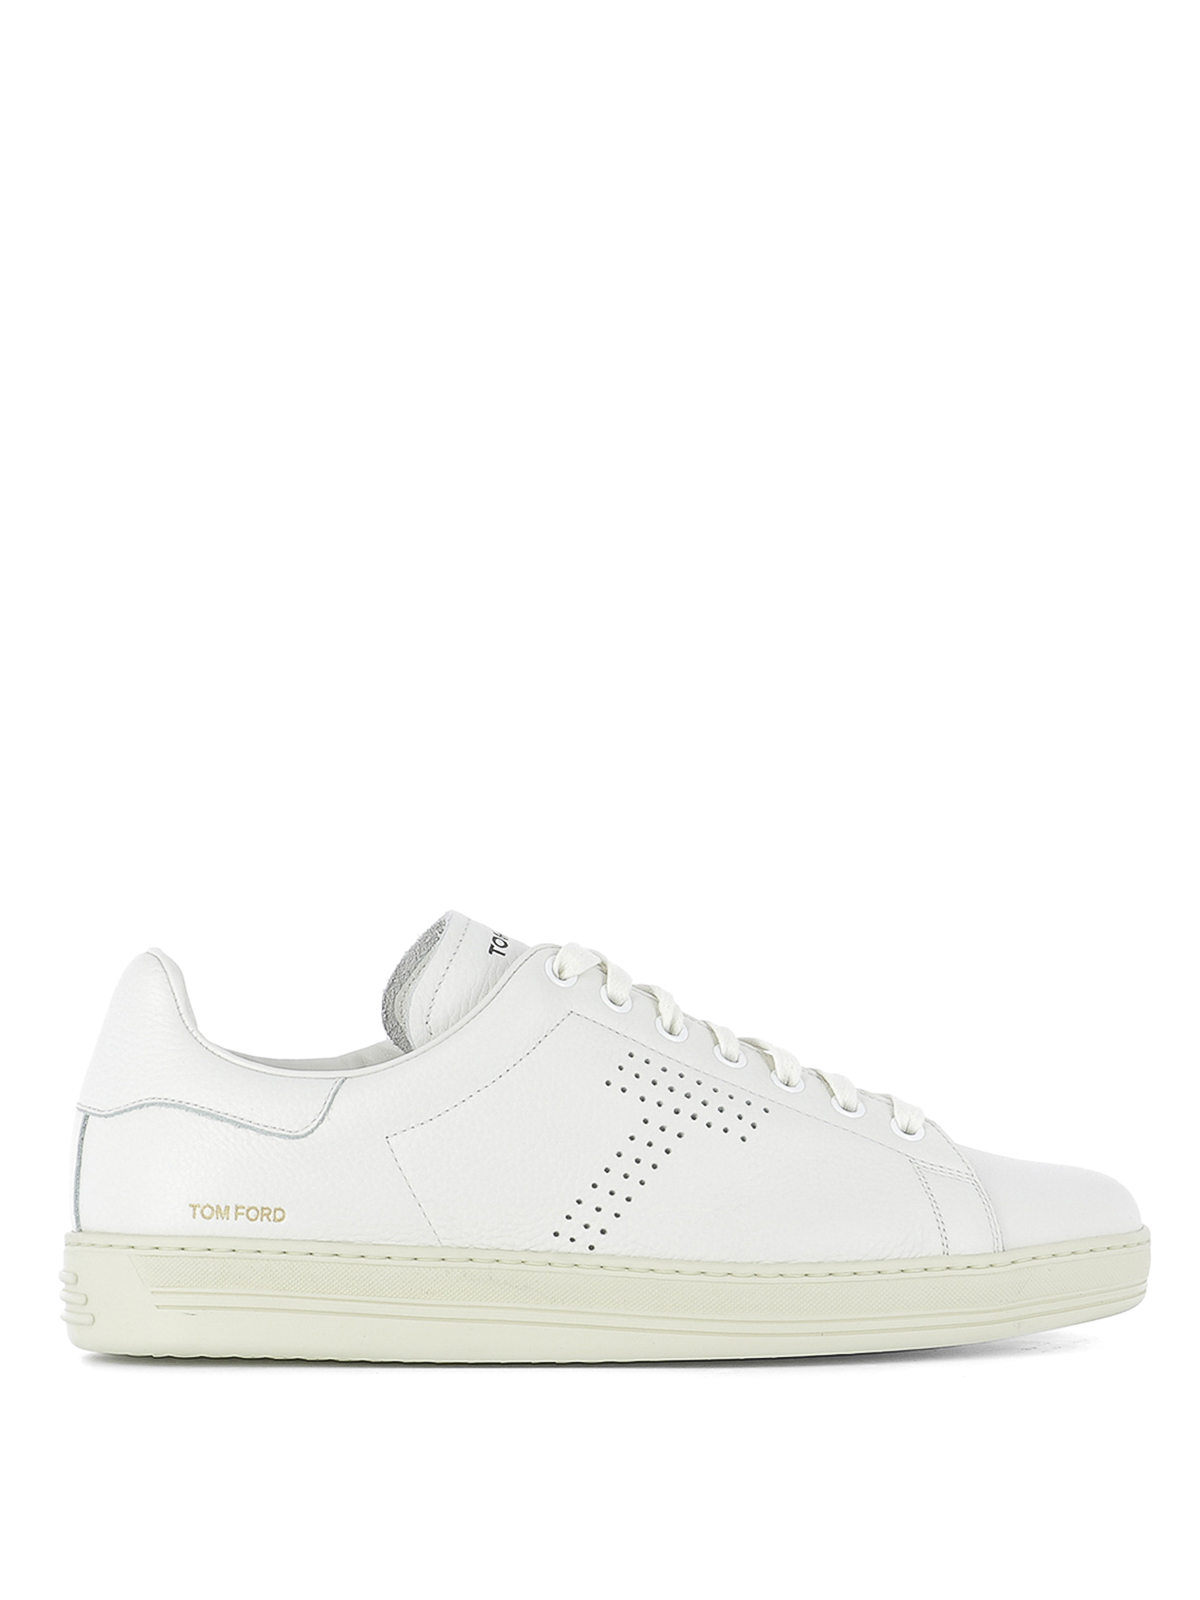 clearance outlet locations with credit card online Tom Ford perforated logo sneakers finishline cheap price latest for sale RedYyJM71N